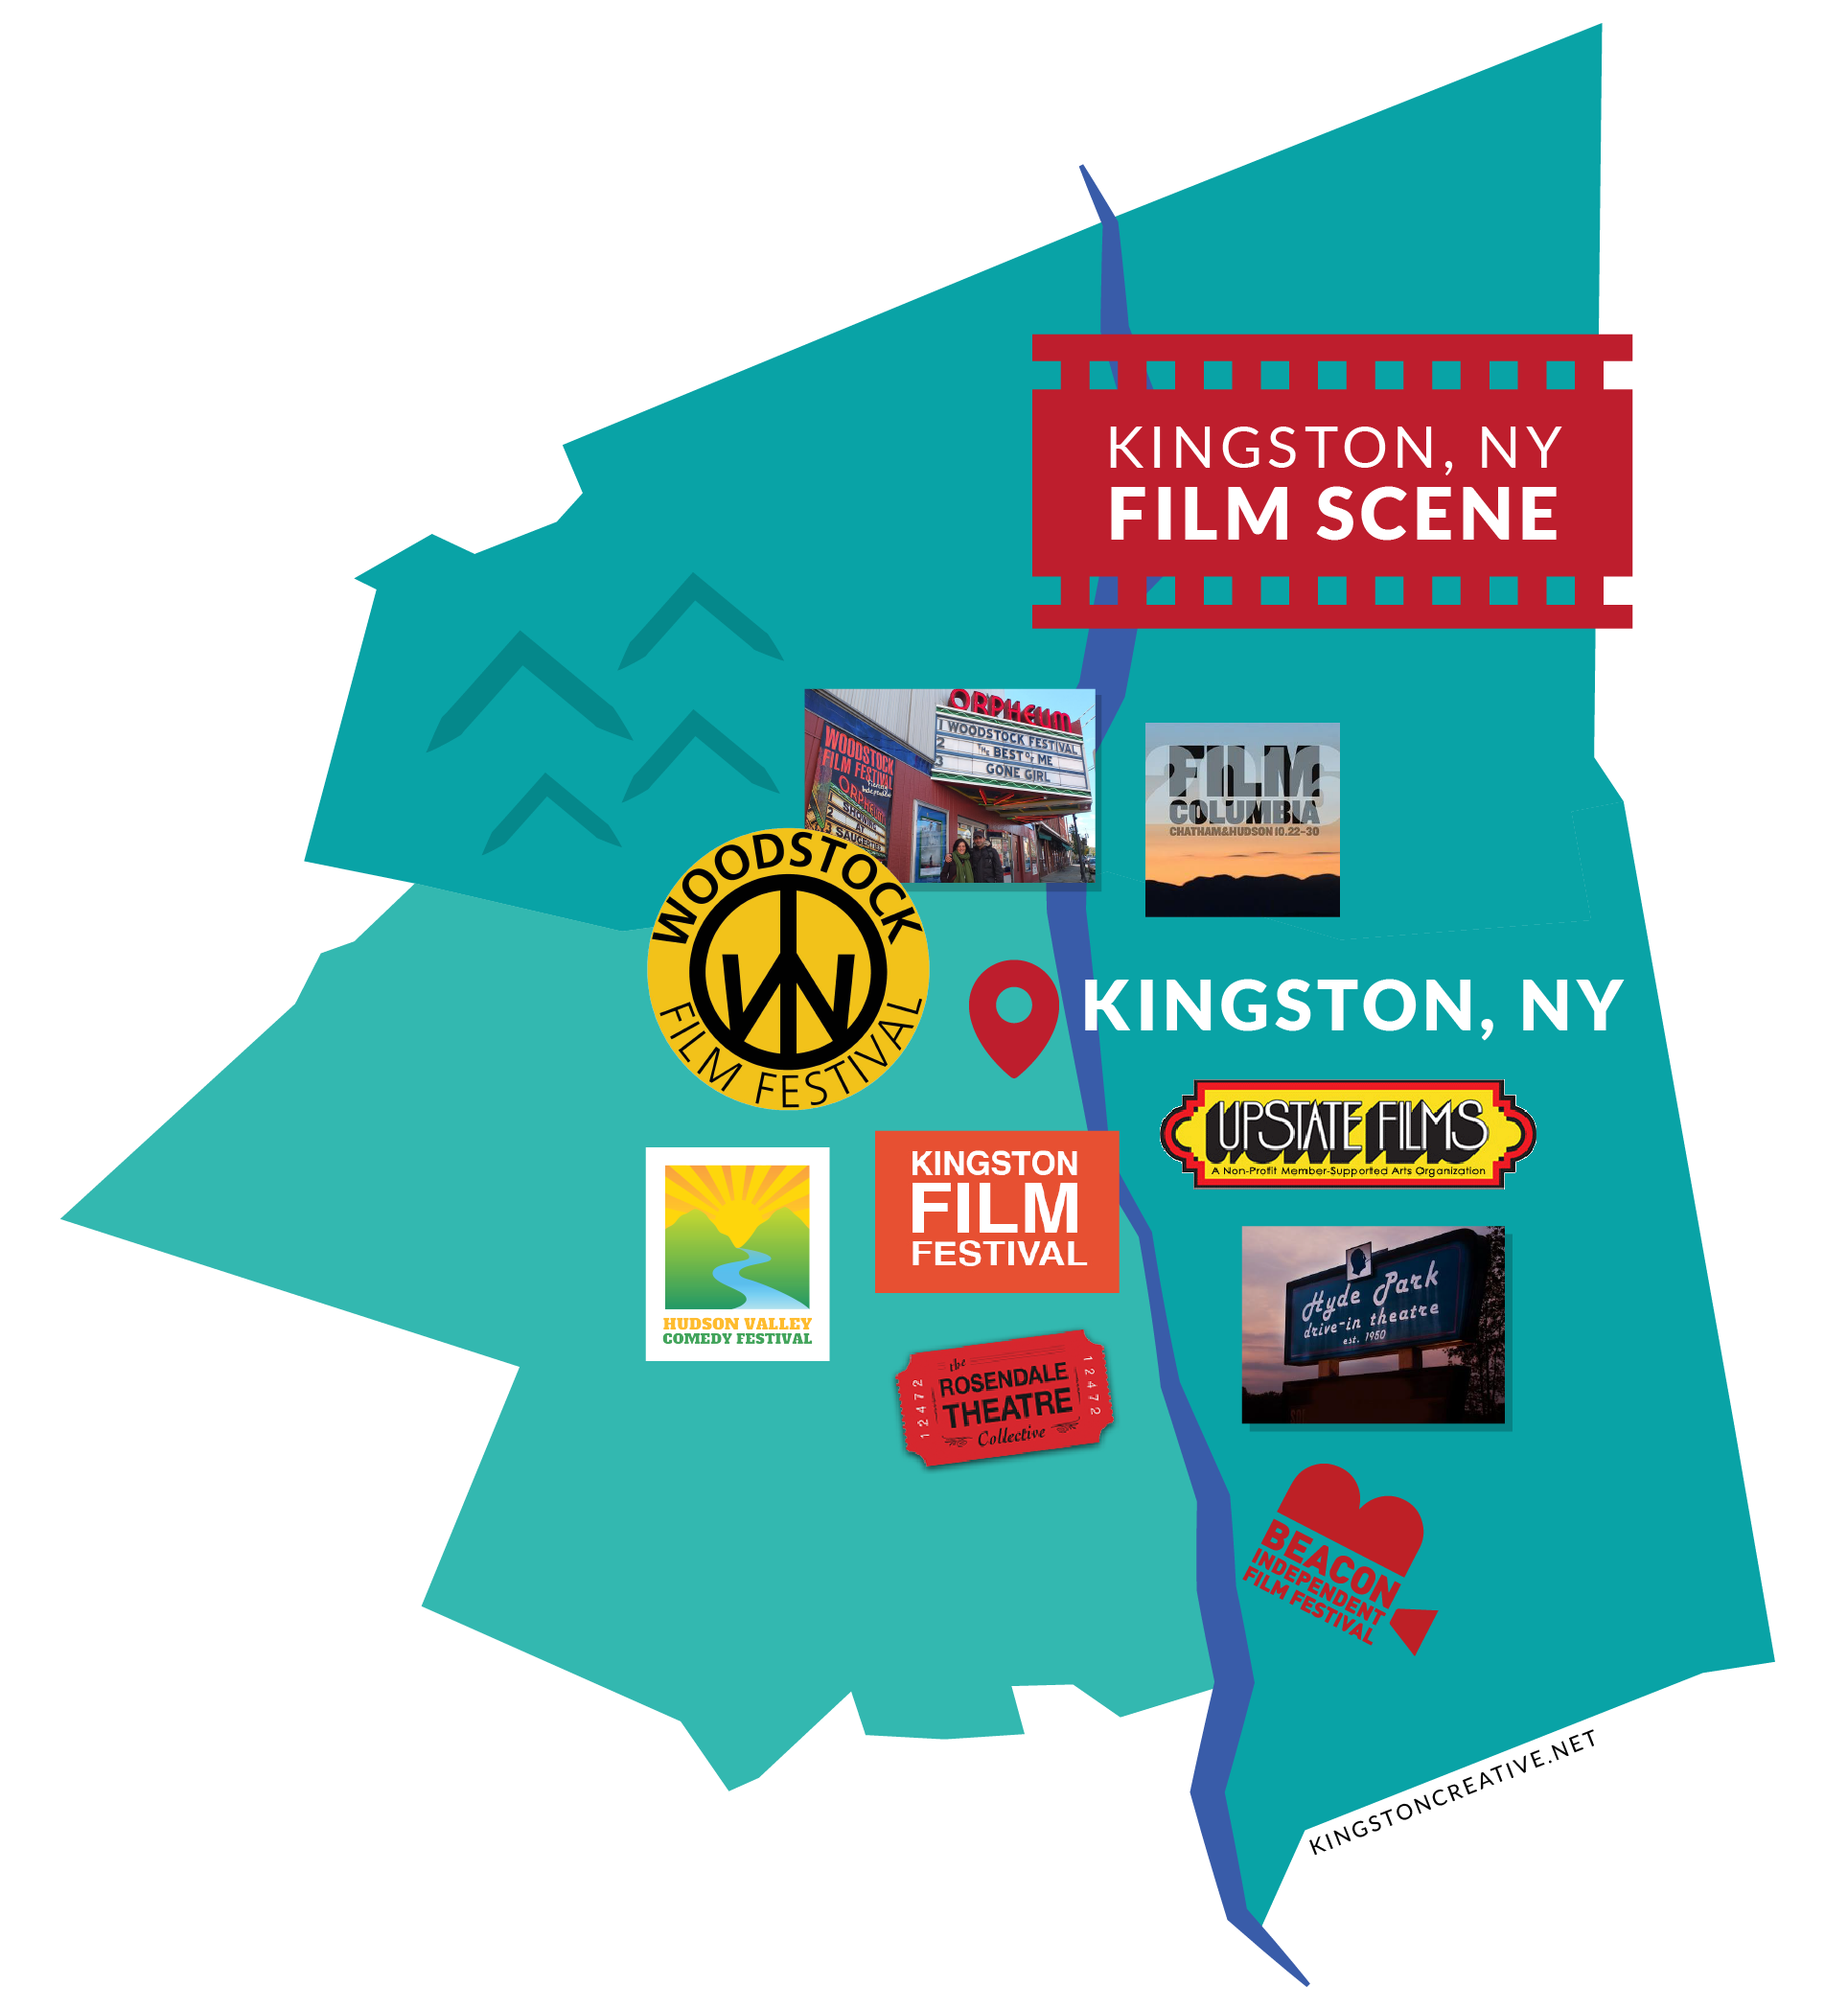 Kingston-NY-film-scene-1.png